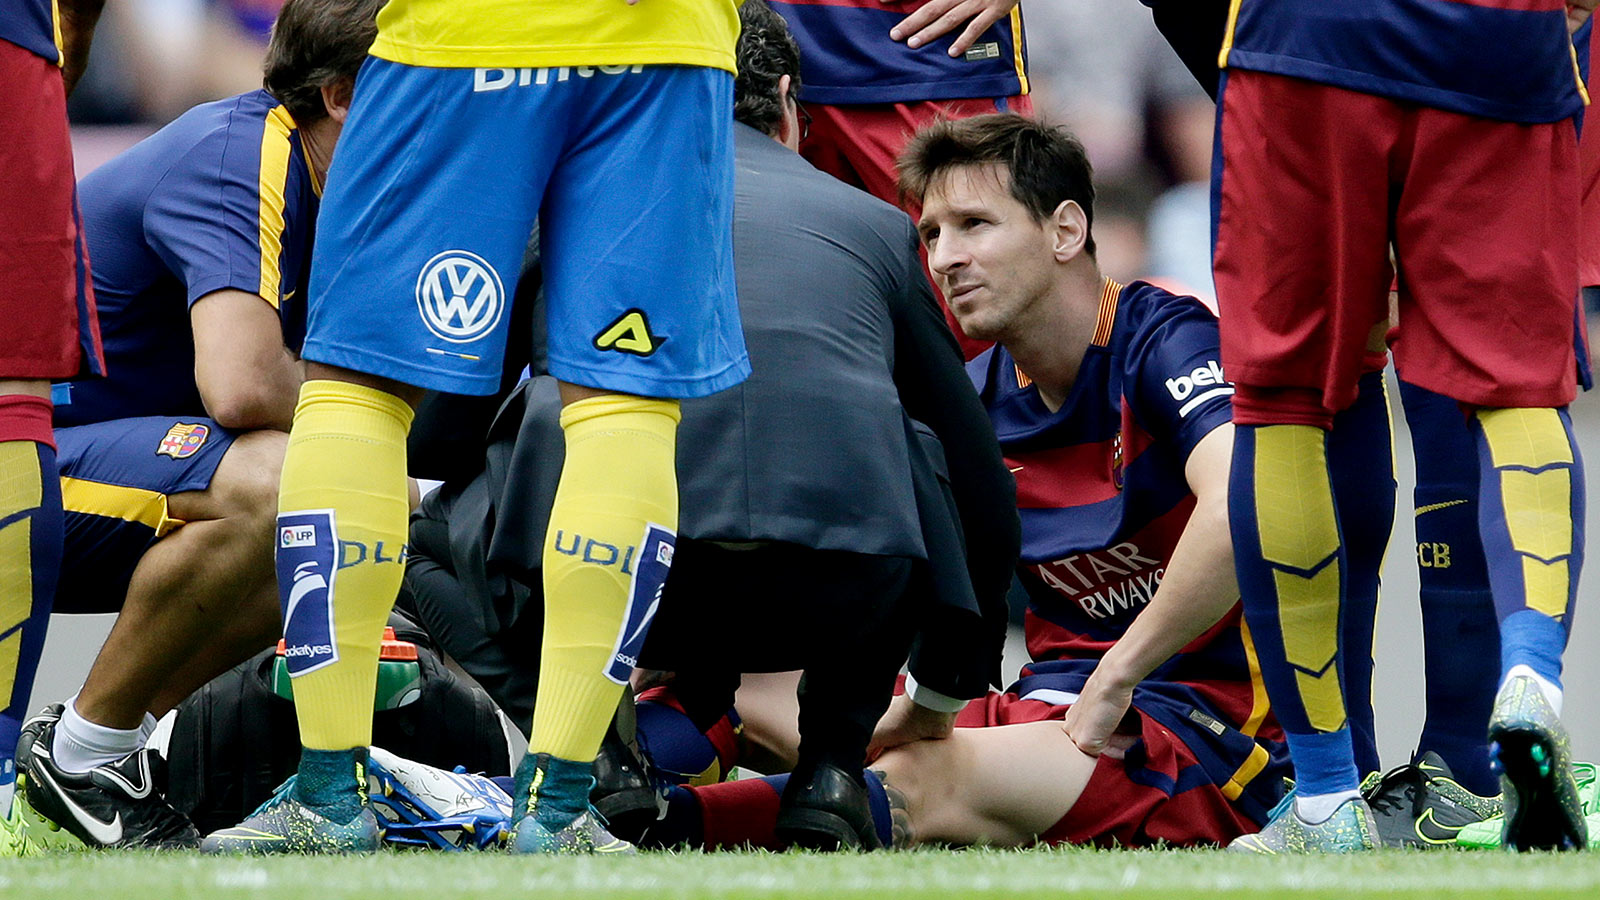 Barcelona's margin of error drops with Messi's injury layoff